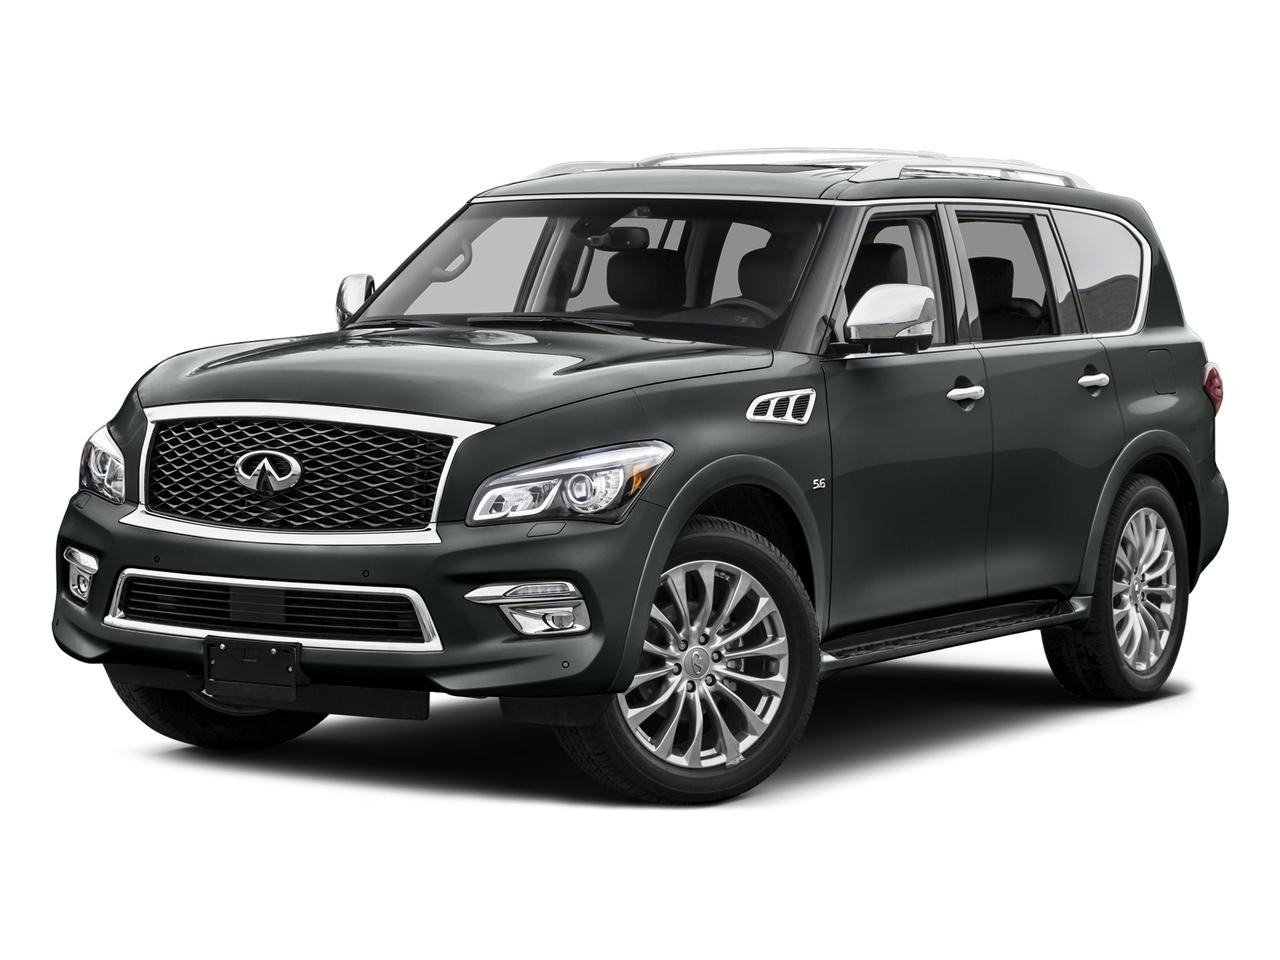 2015 INFINITI QX80 Vehicle Photo in Baton Rouge, LA 70809